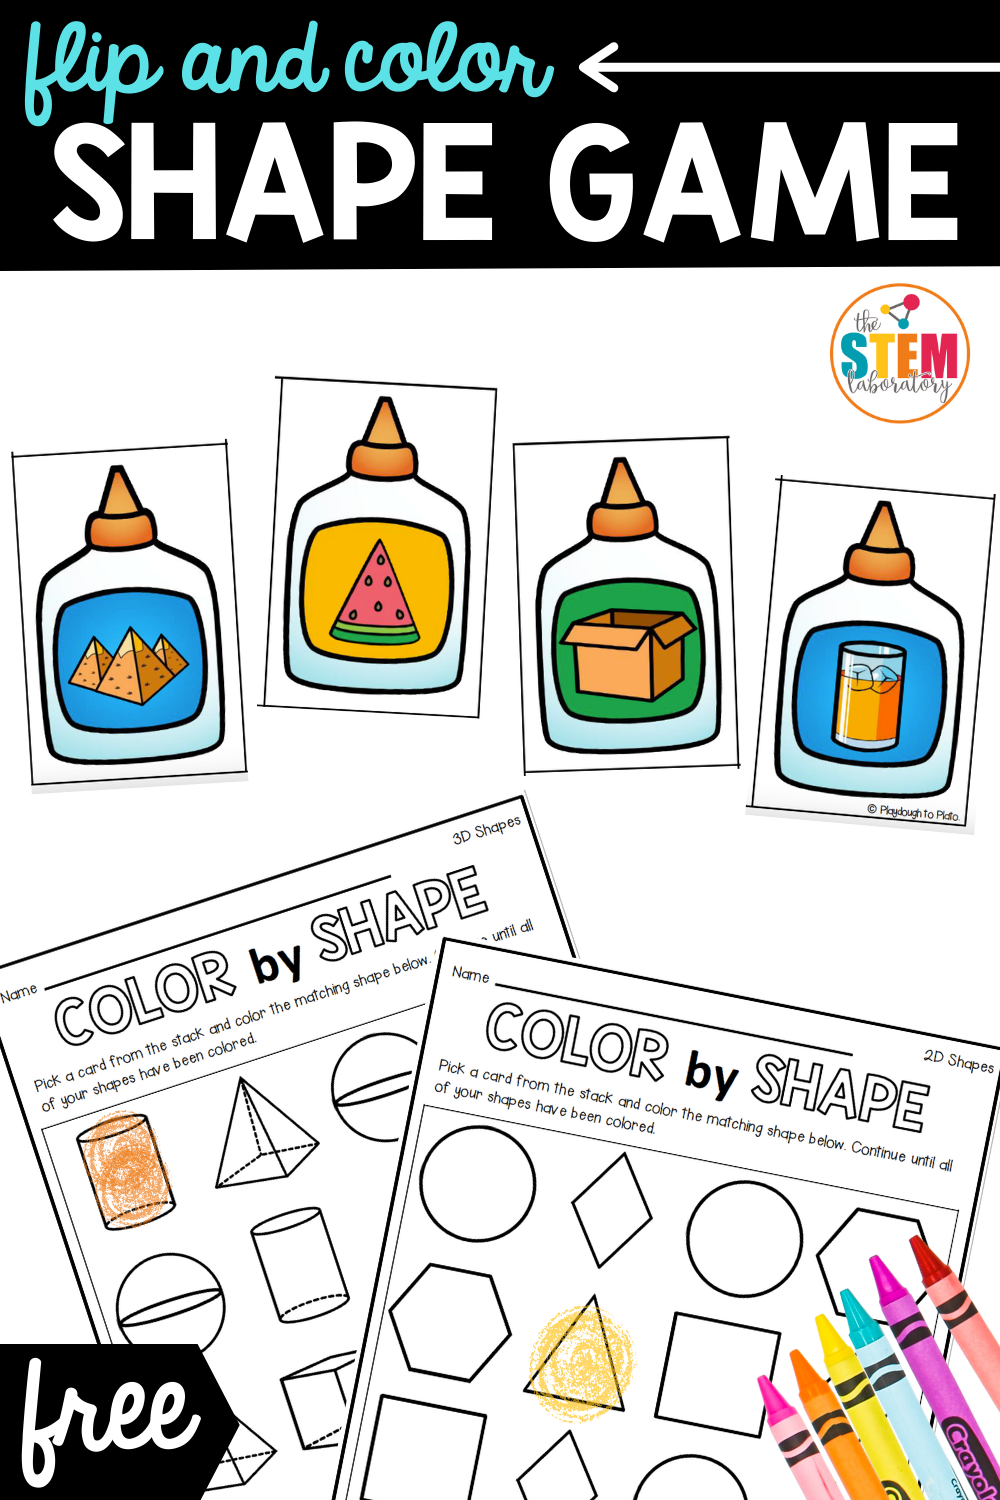 Flip and Color Shape Game